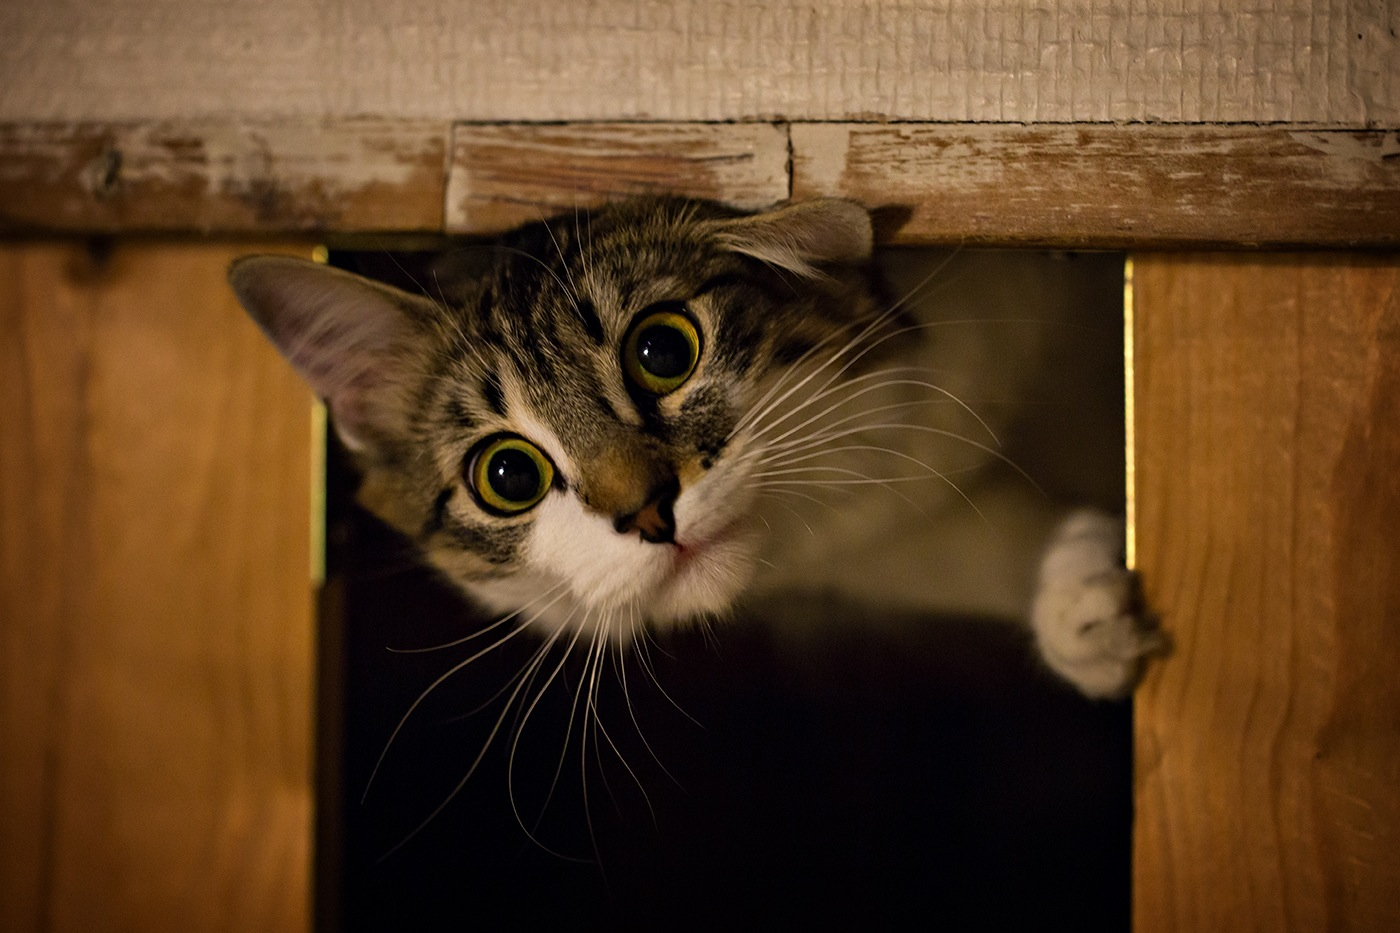 photographe-animaux-domestiques-chat-guillaume-heraud-12-small